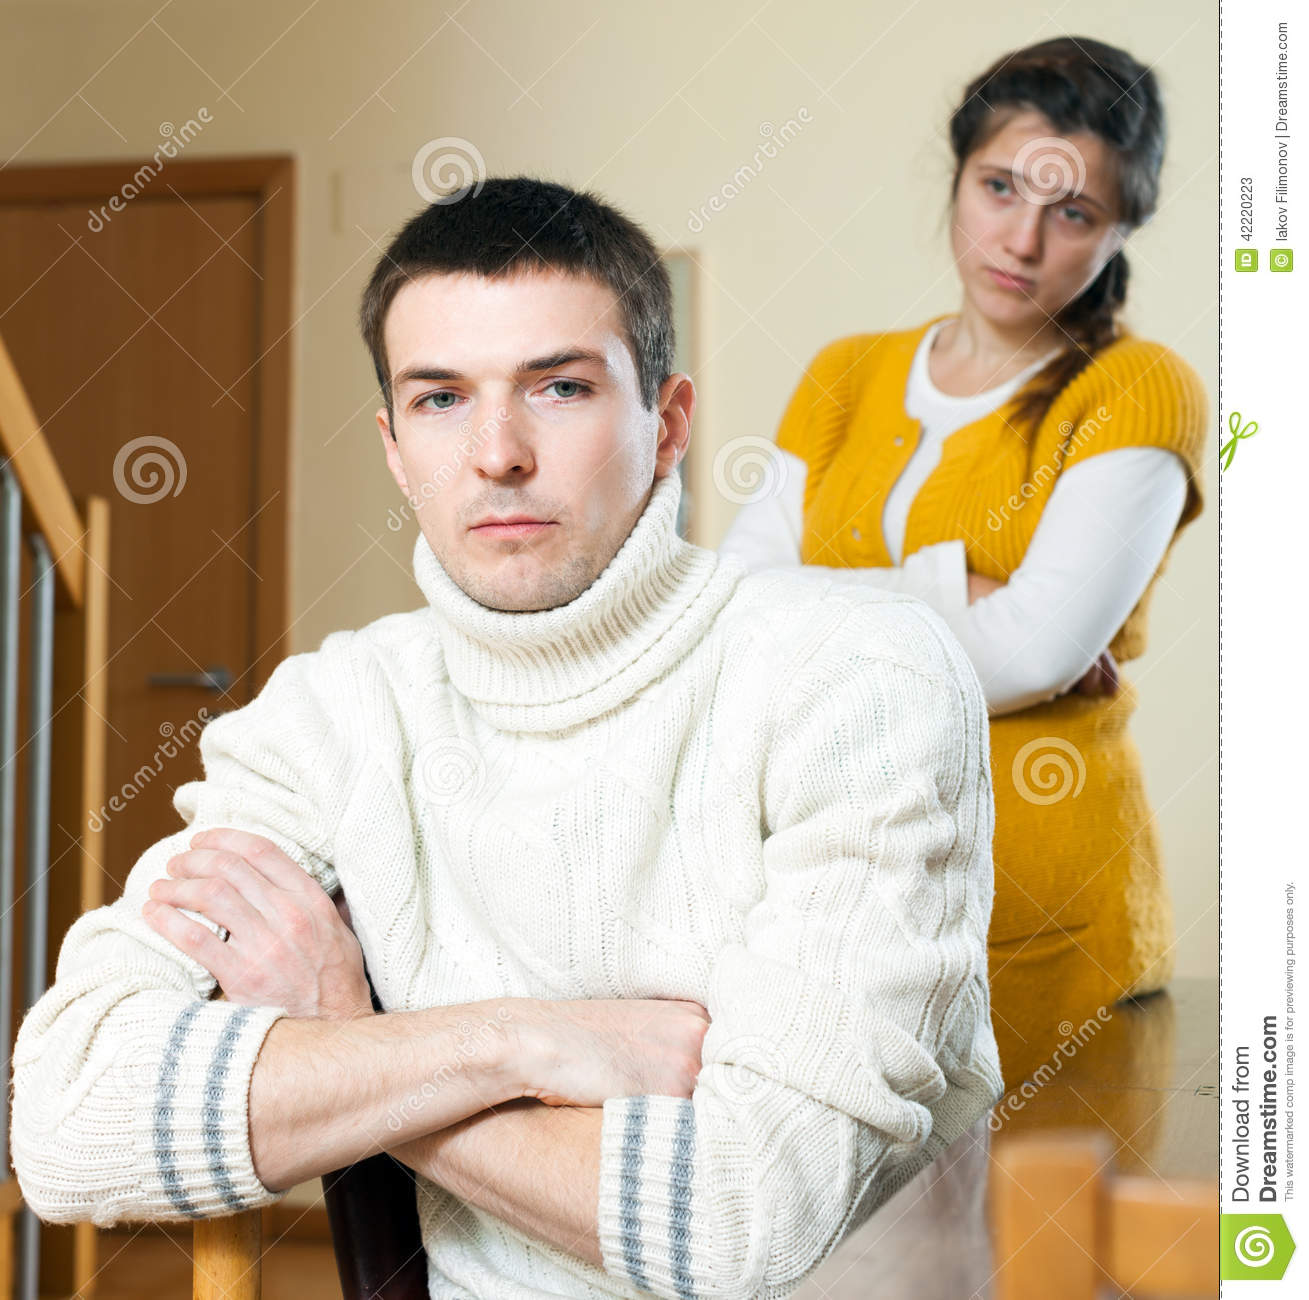 Family Conflict Sad Ordinary Man Listening To Woman Stock